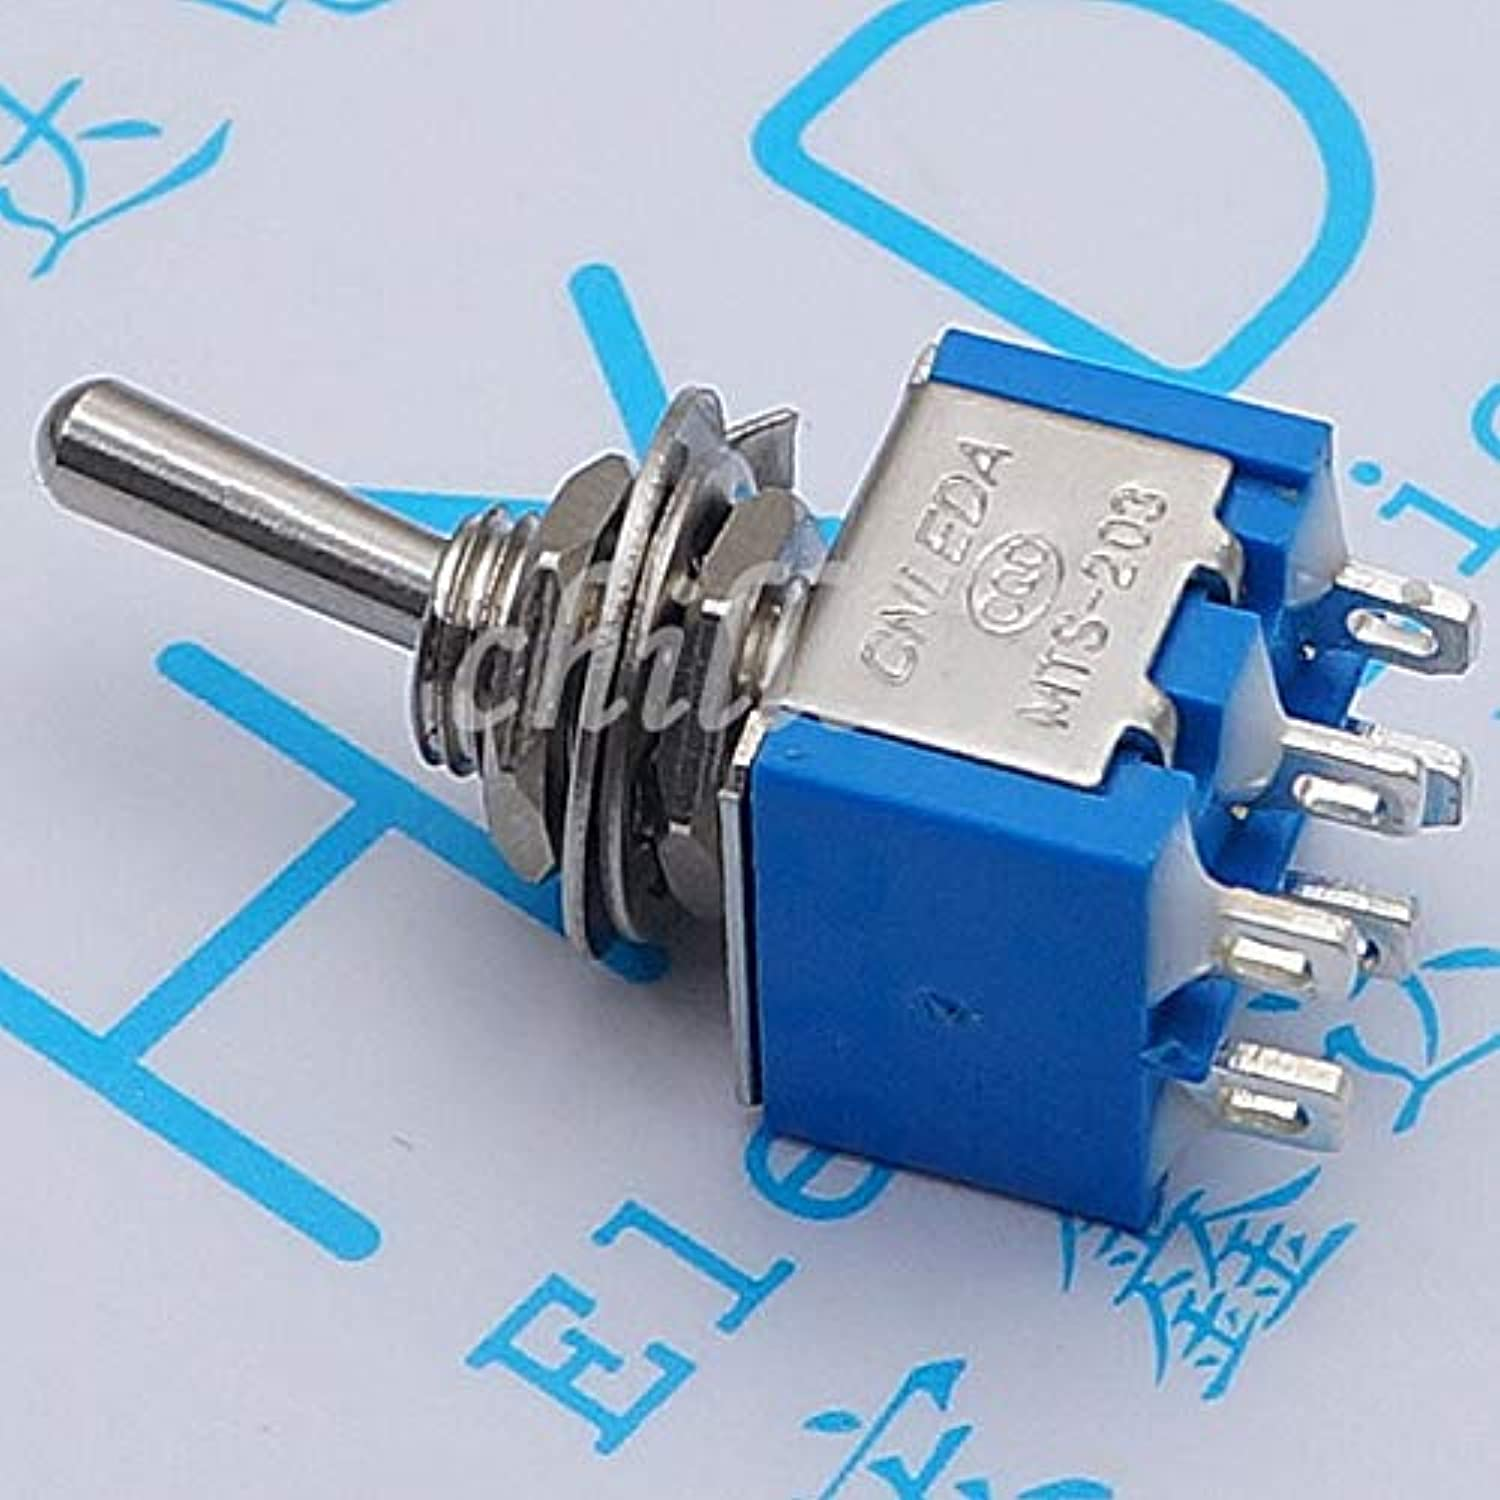 30PCS   Toggle Switch MTS203 Double Button Switch 203 6A 125V 3A 250V Third lioujiao